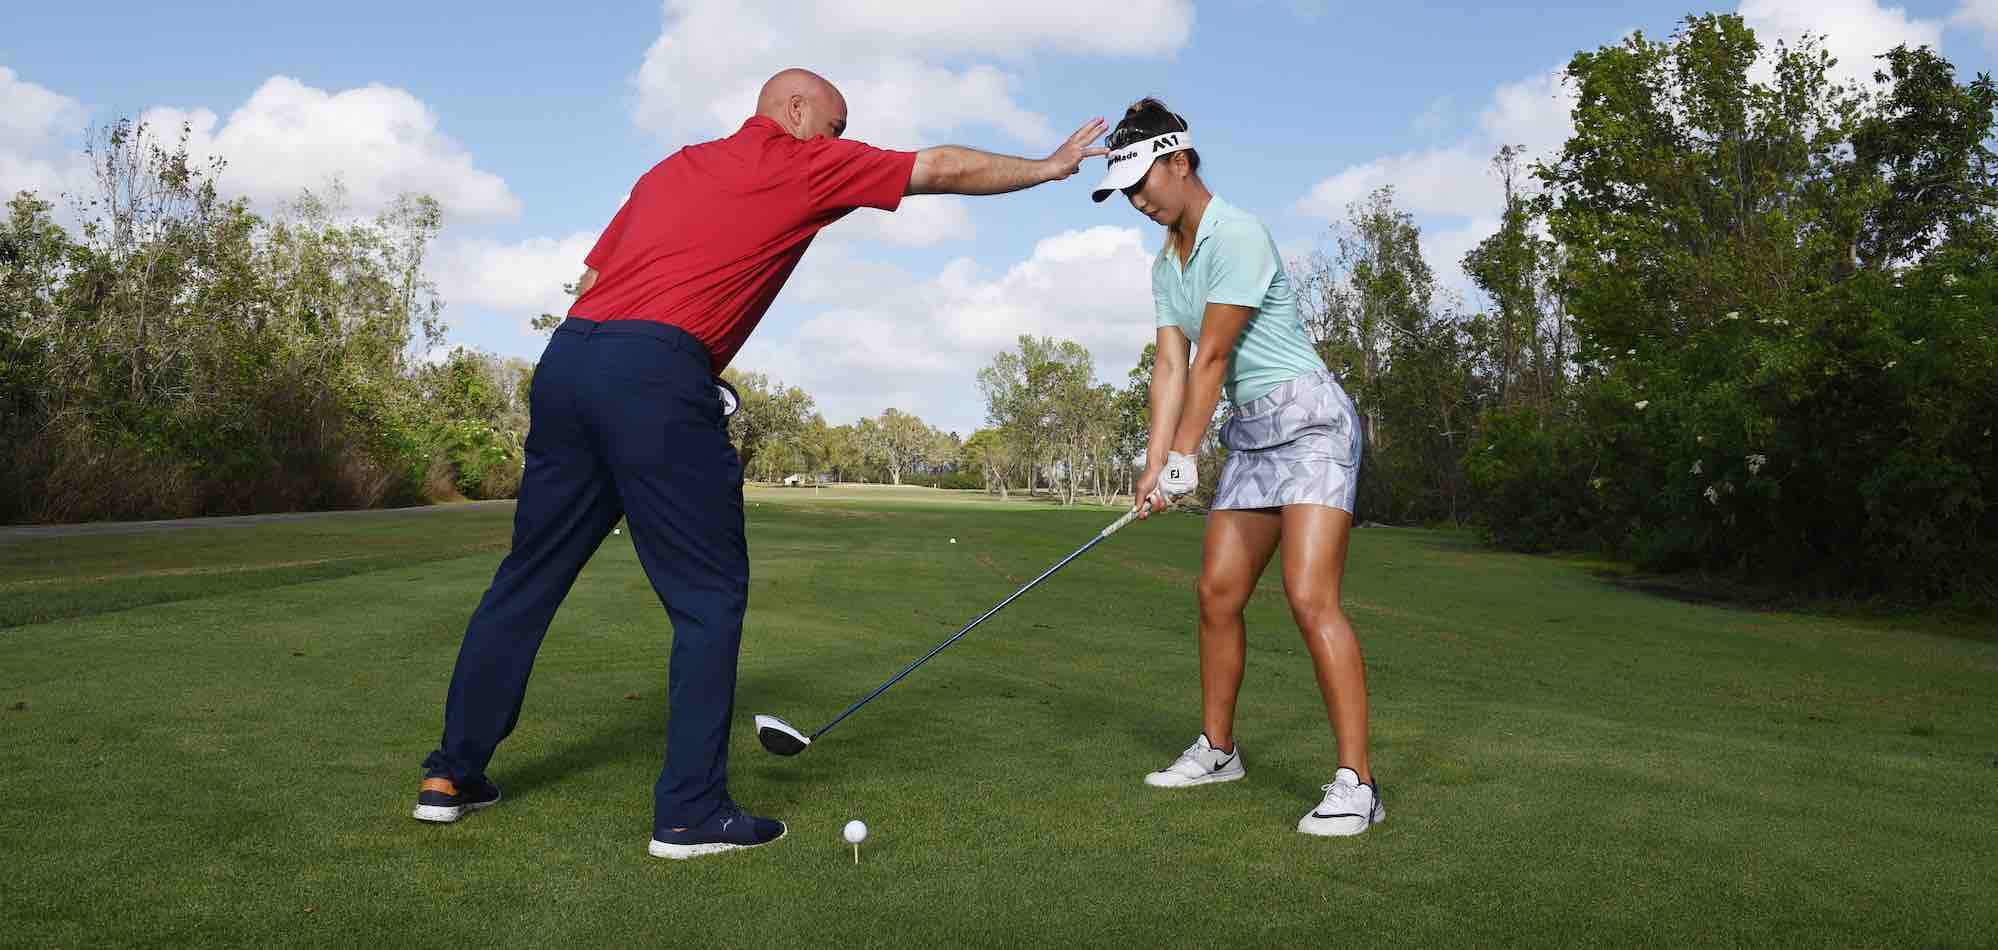 Take the Golf Learning Style Assessment!